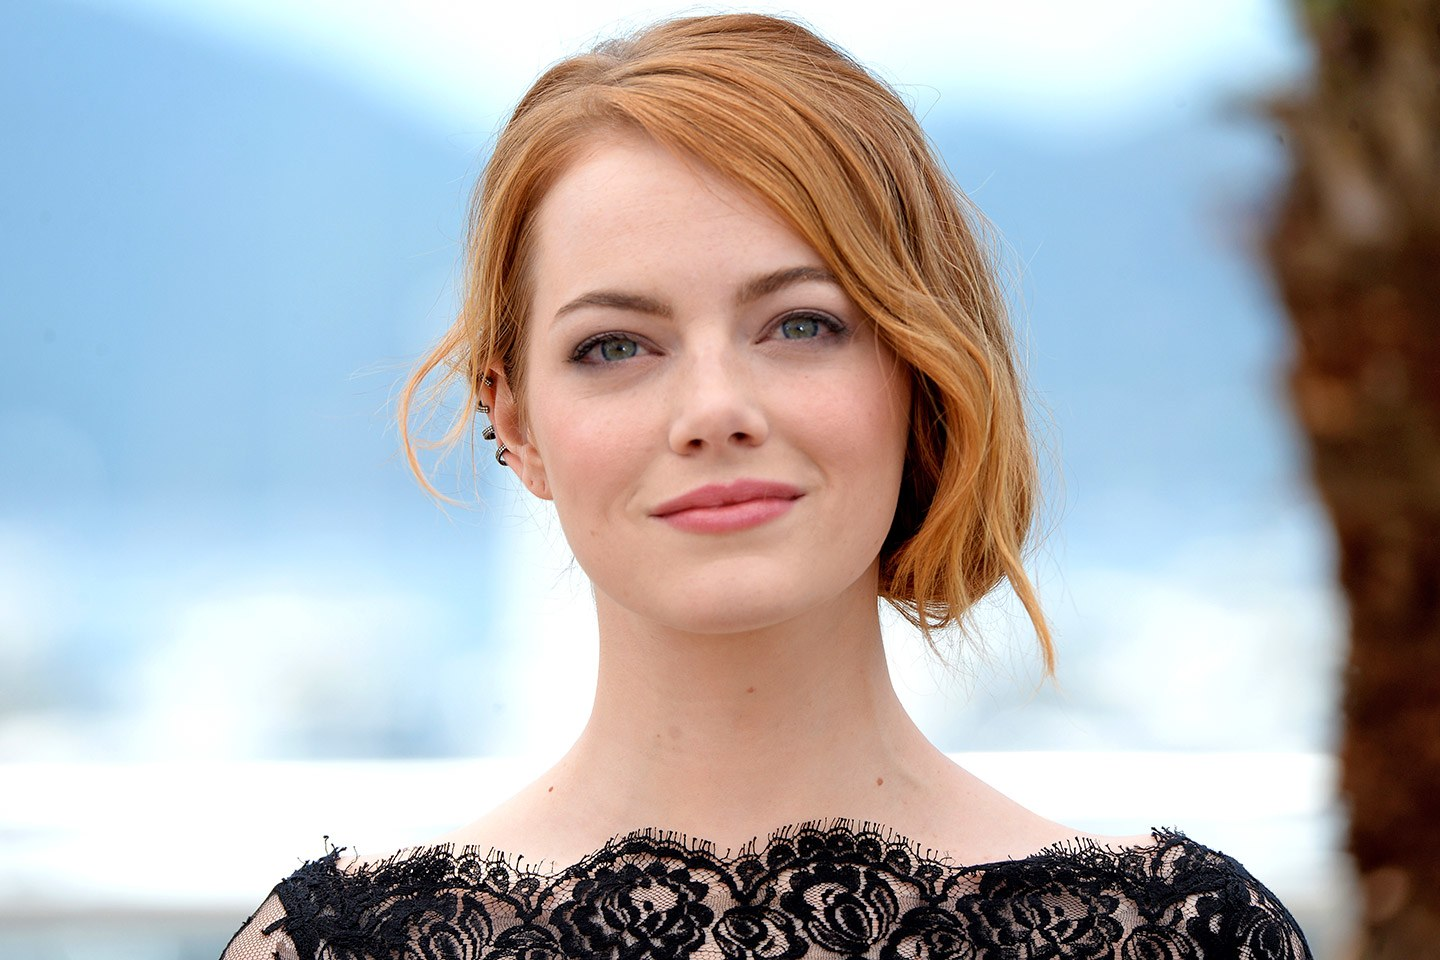 Emma stone picture - Emma Stone Net Worth, Movies, Family, Boyfriends, Pictures and Wallpapers